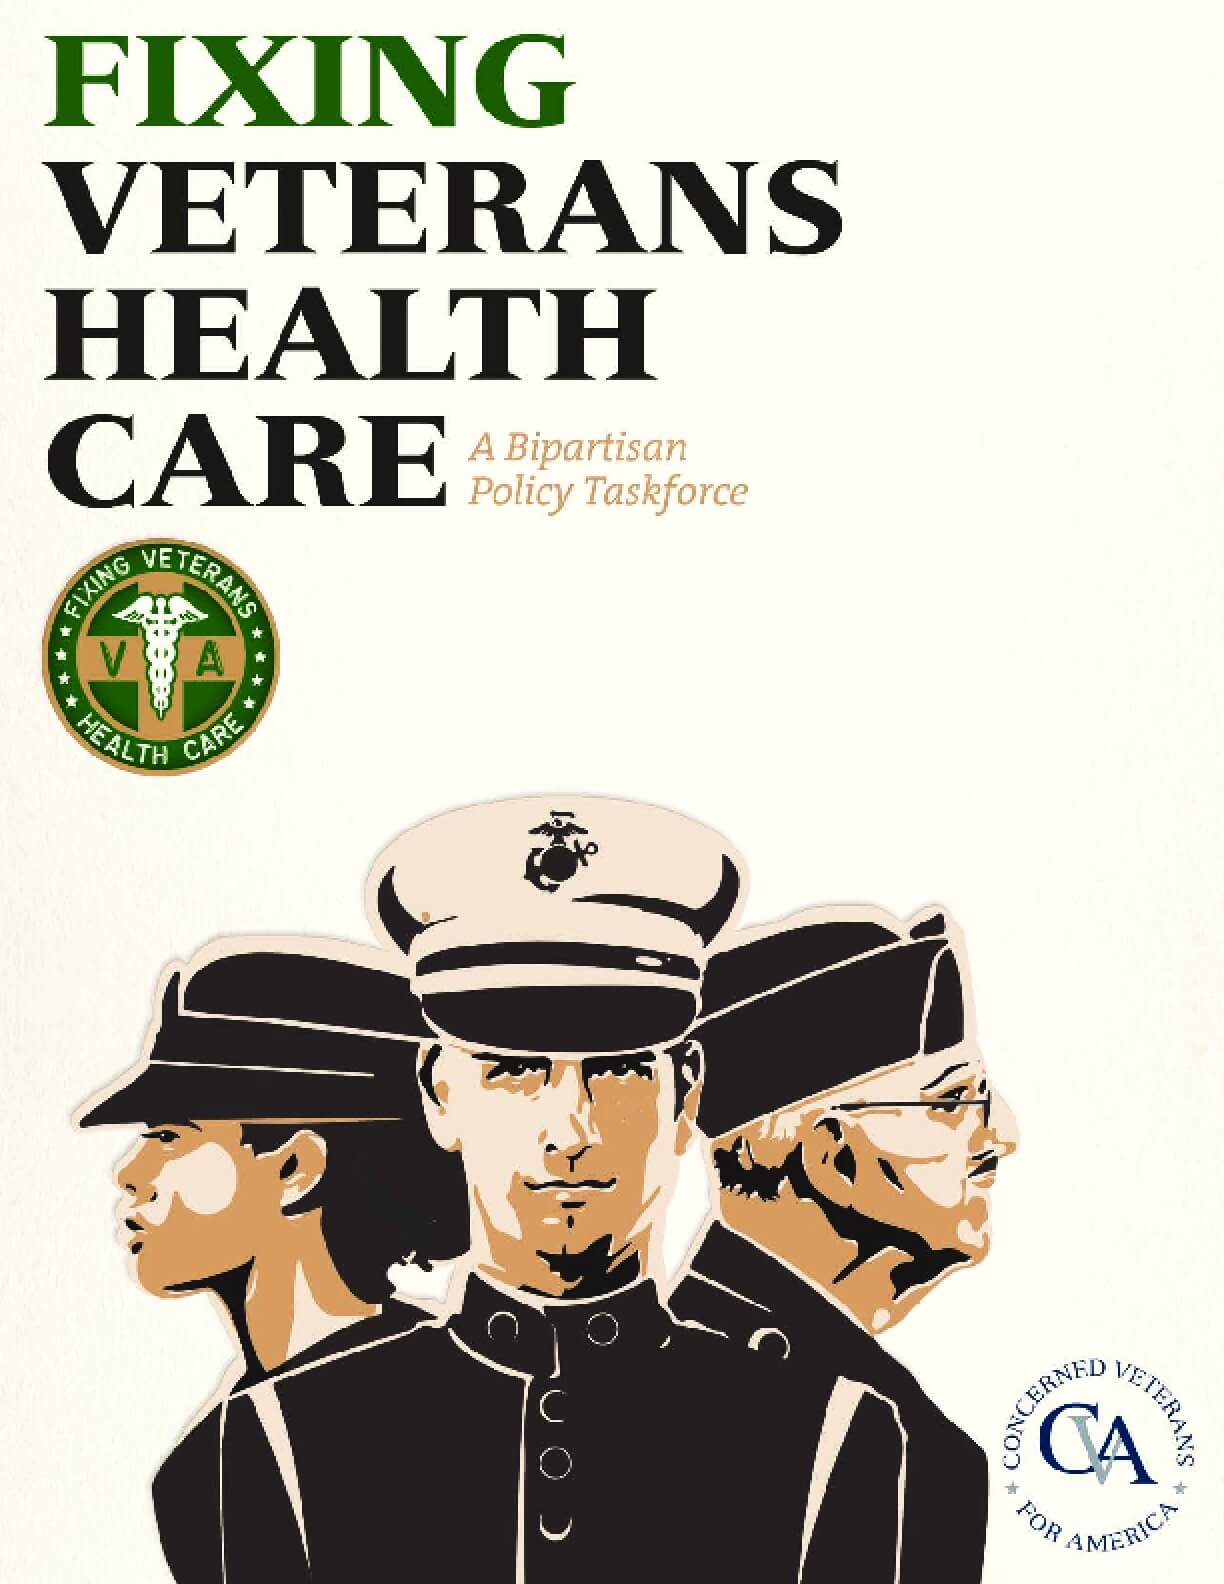 Fixing Veterans Health Care: A Bipartisan Policy Taskforce